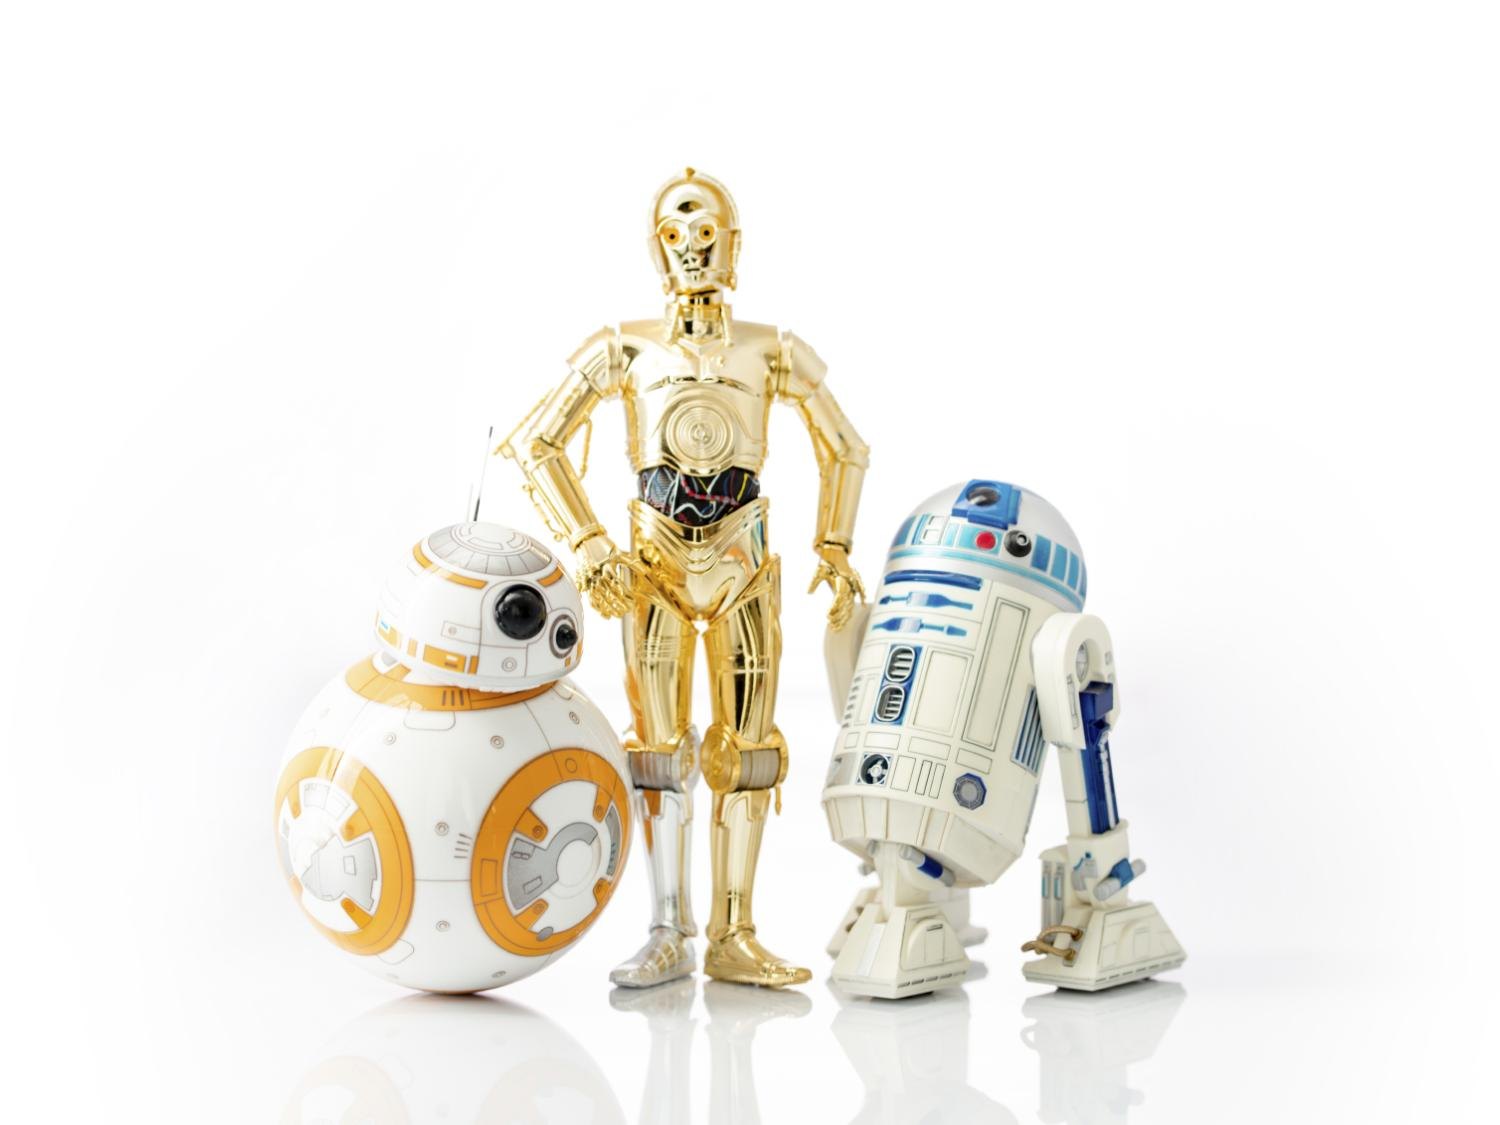 BB8, R2D2 and CP3O